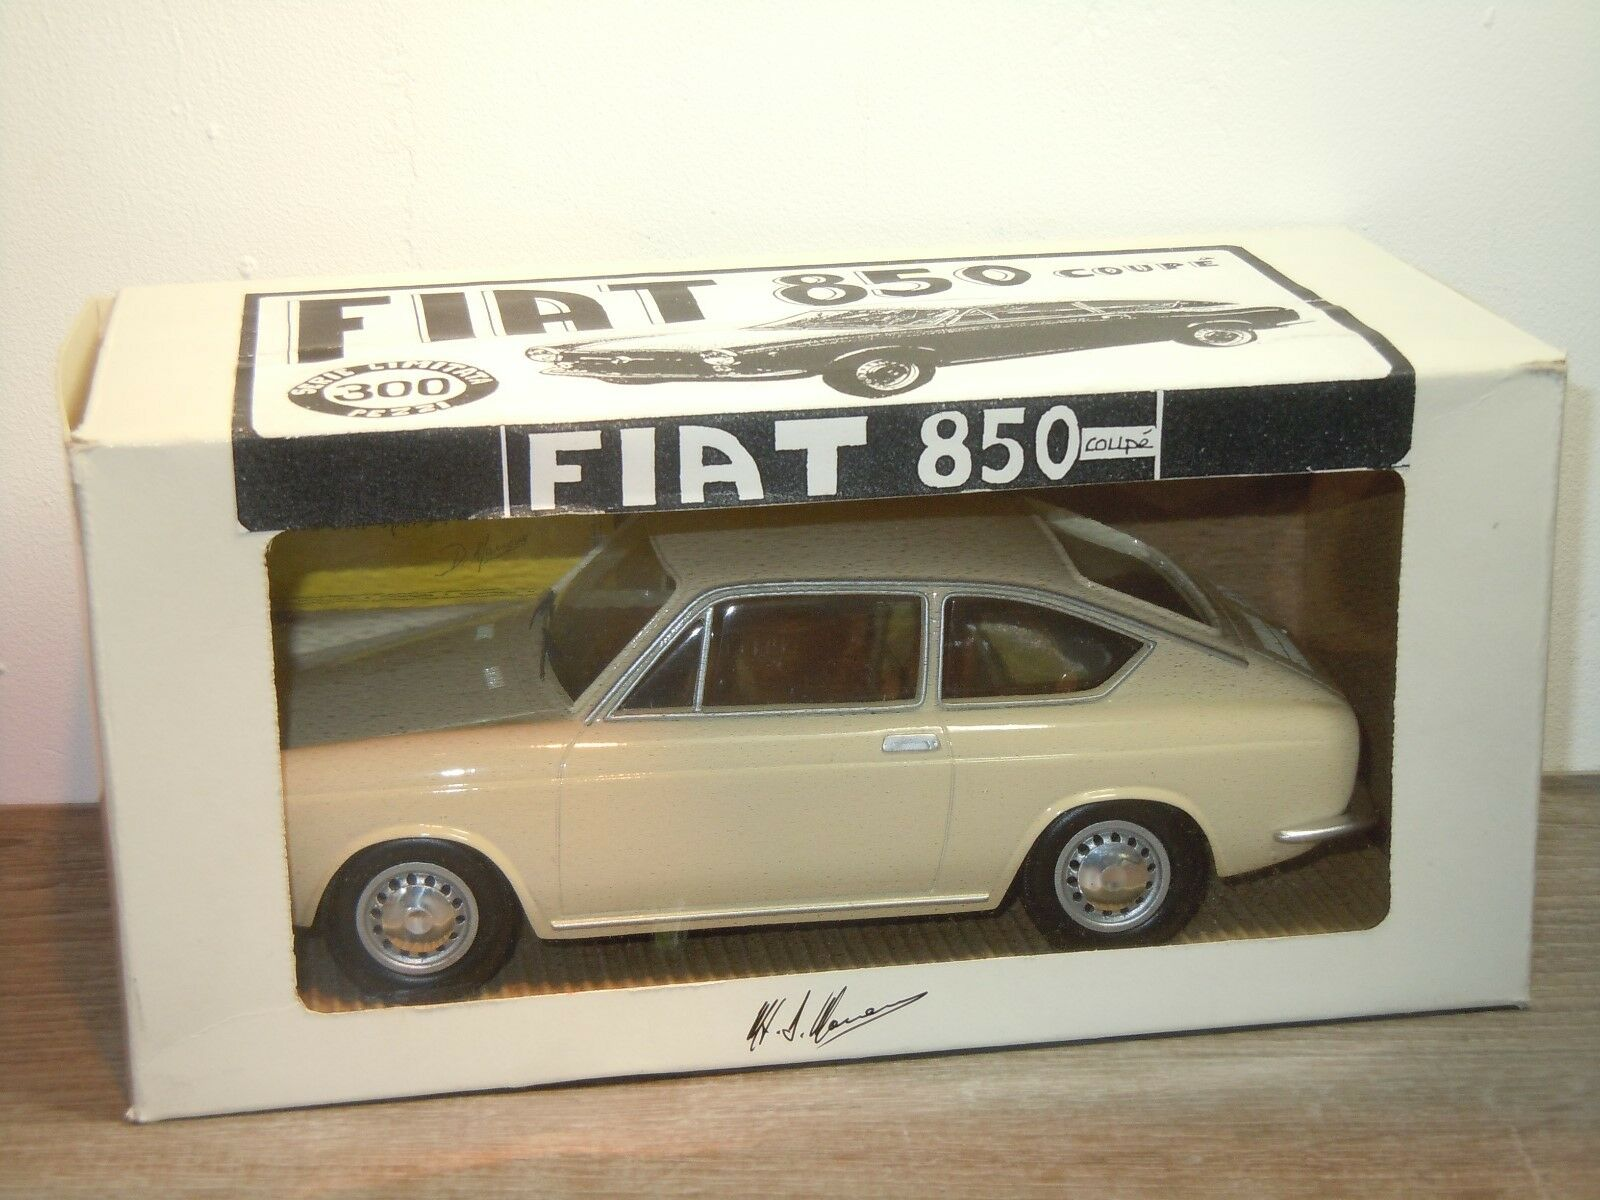 Fiat 850 Coupe - Mamone Models 1 18 in Box 1 300pcs 34301